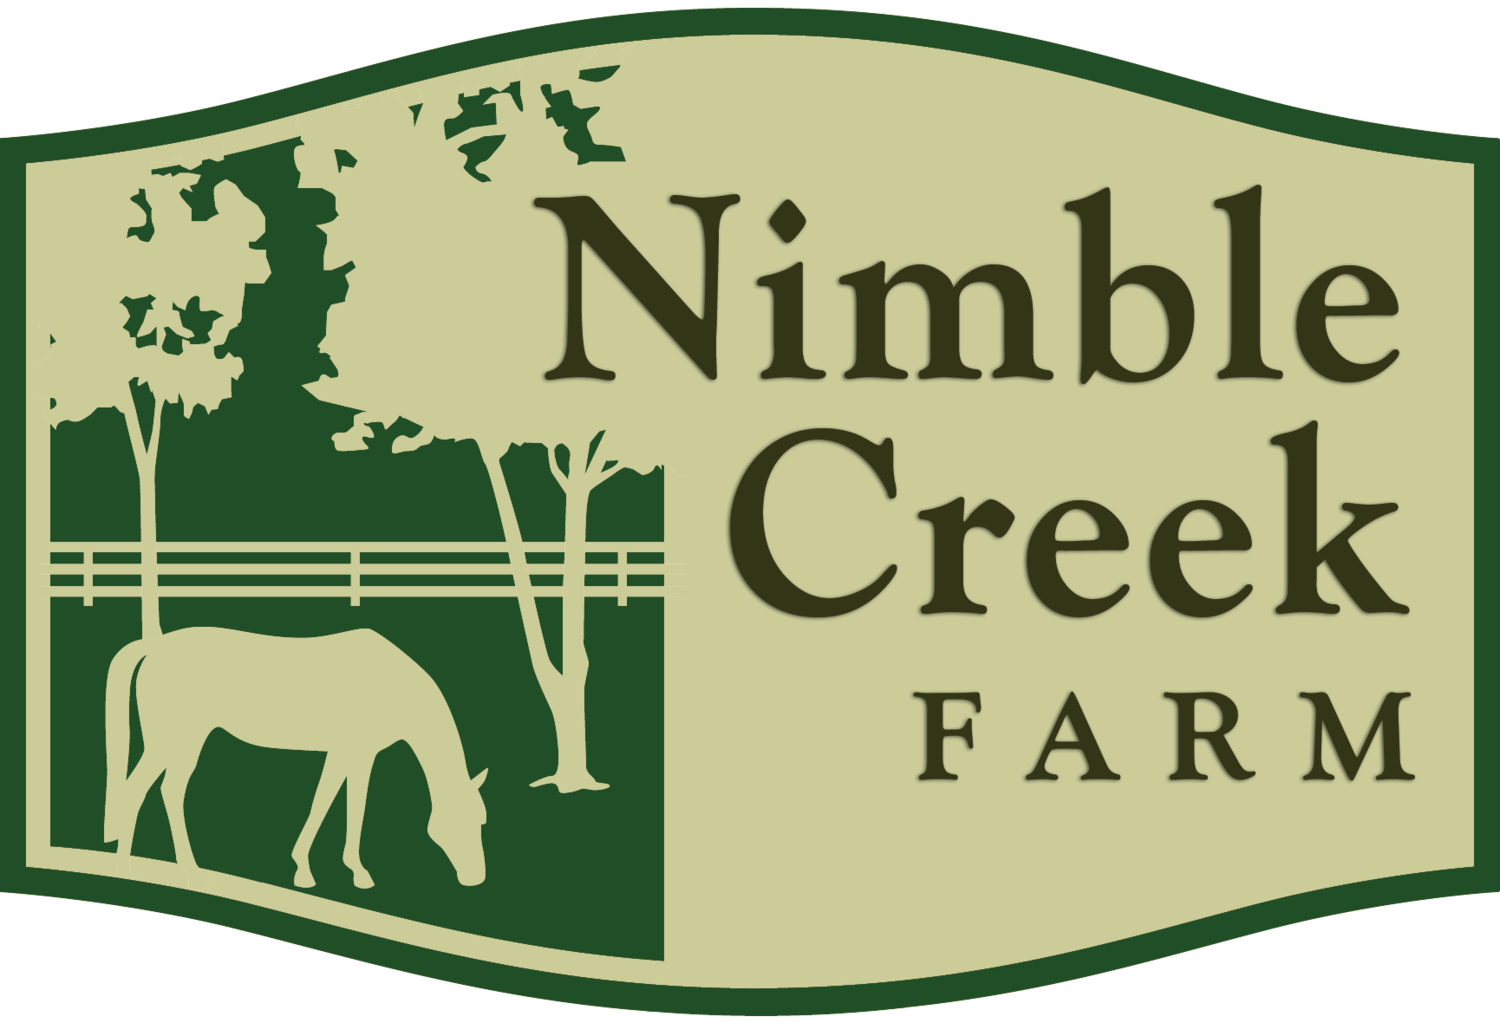 Nimble Creek Farm